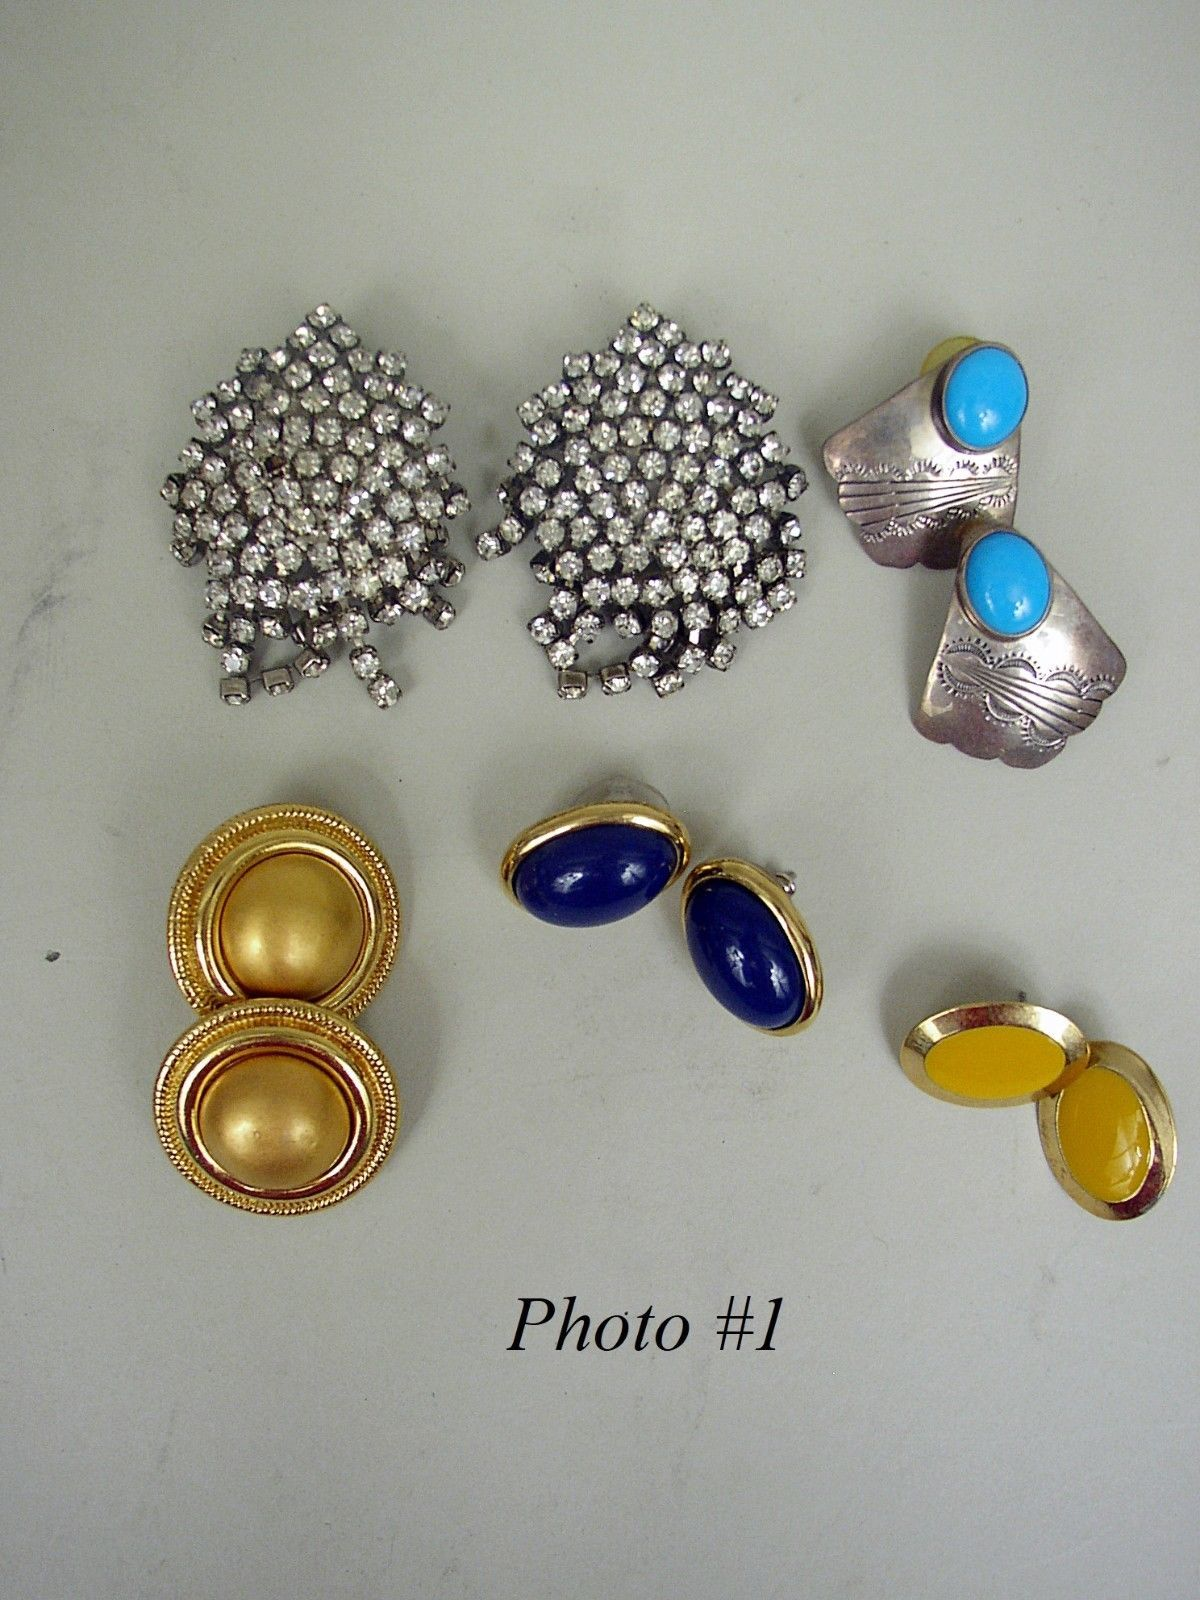 Lot of 22 Vintage/Contemporary Earrings - $4.09 Average Each Pair